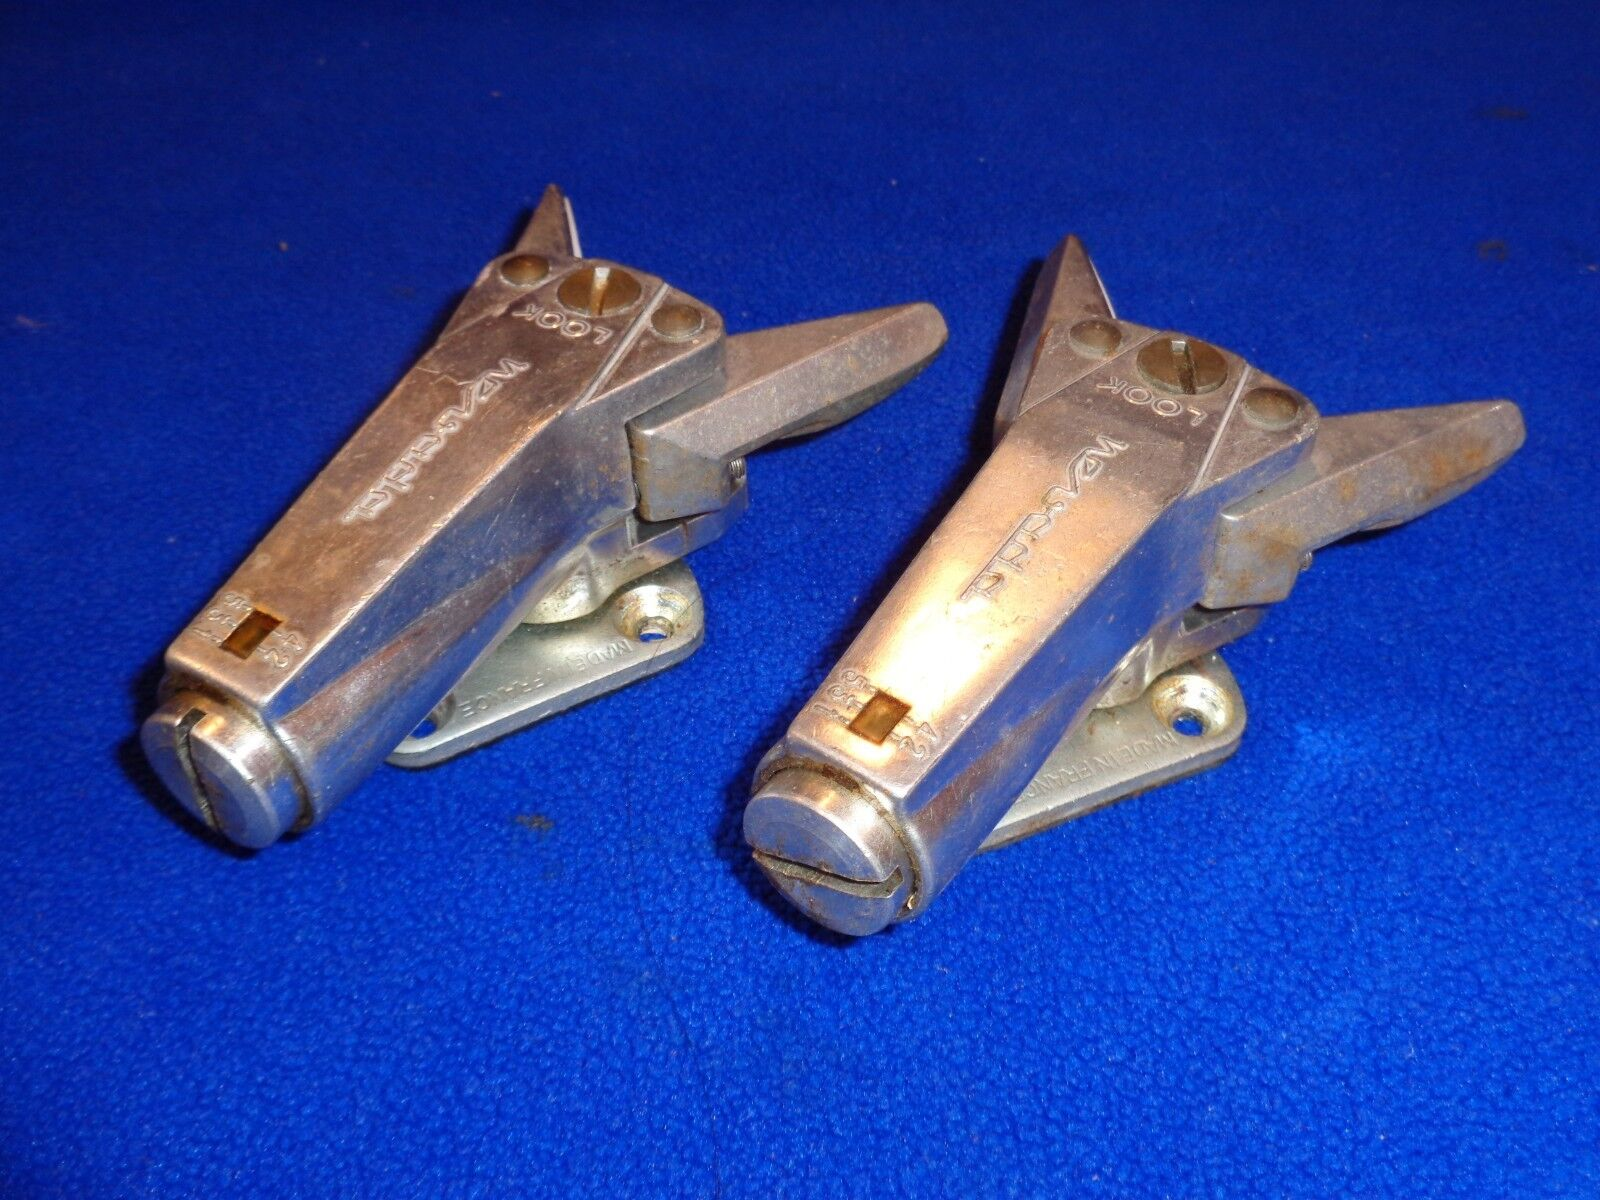 Pair of Vintage Look Nevada Alpine Ski Bindings Made in France